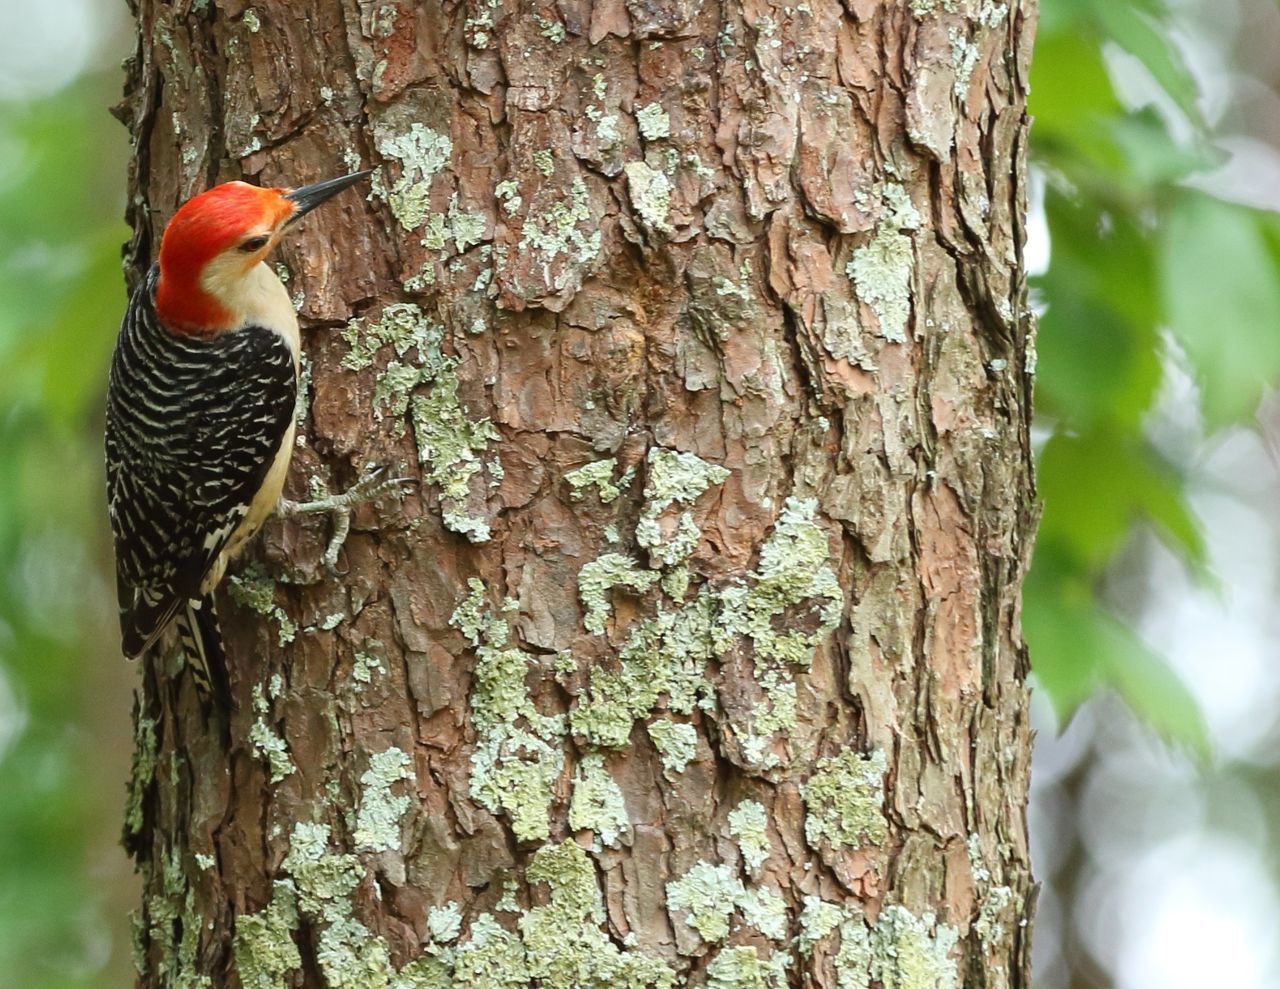 Red-bellied Woodpecker Pine Tree Animal Themes Animals In The Wild Beauty In Nature Outdoors